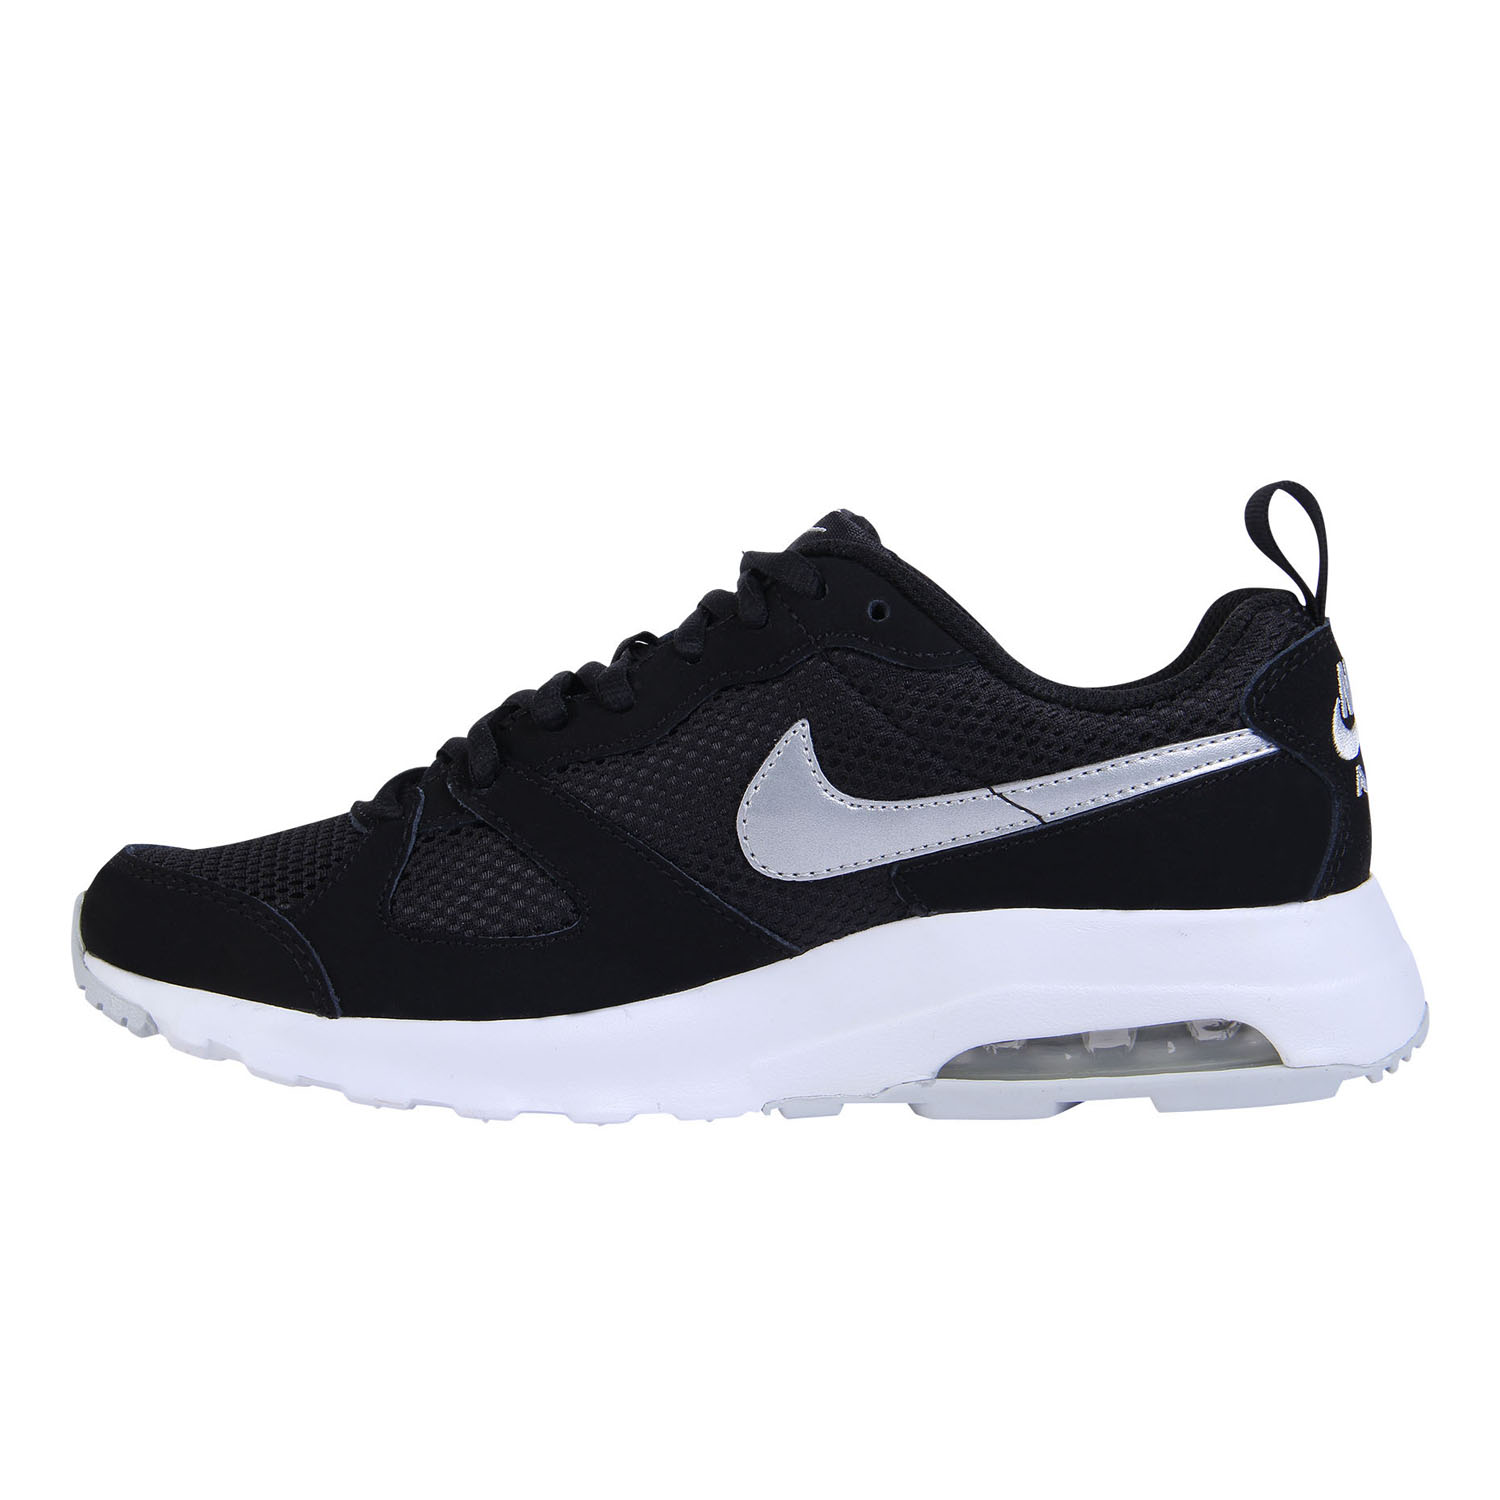 Nike authentic nike women's nike air max muse lightweight cushioning air cushion sports shoes 654729-011